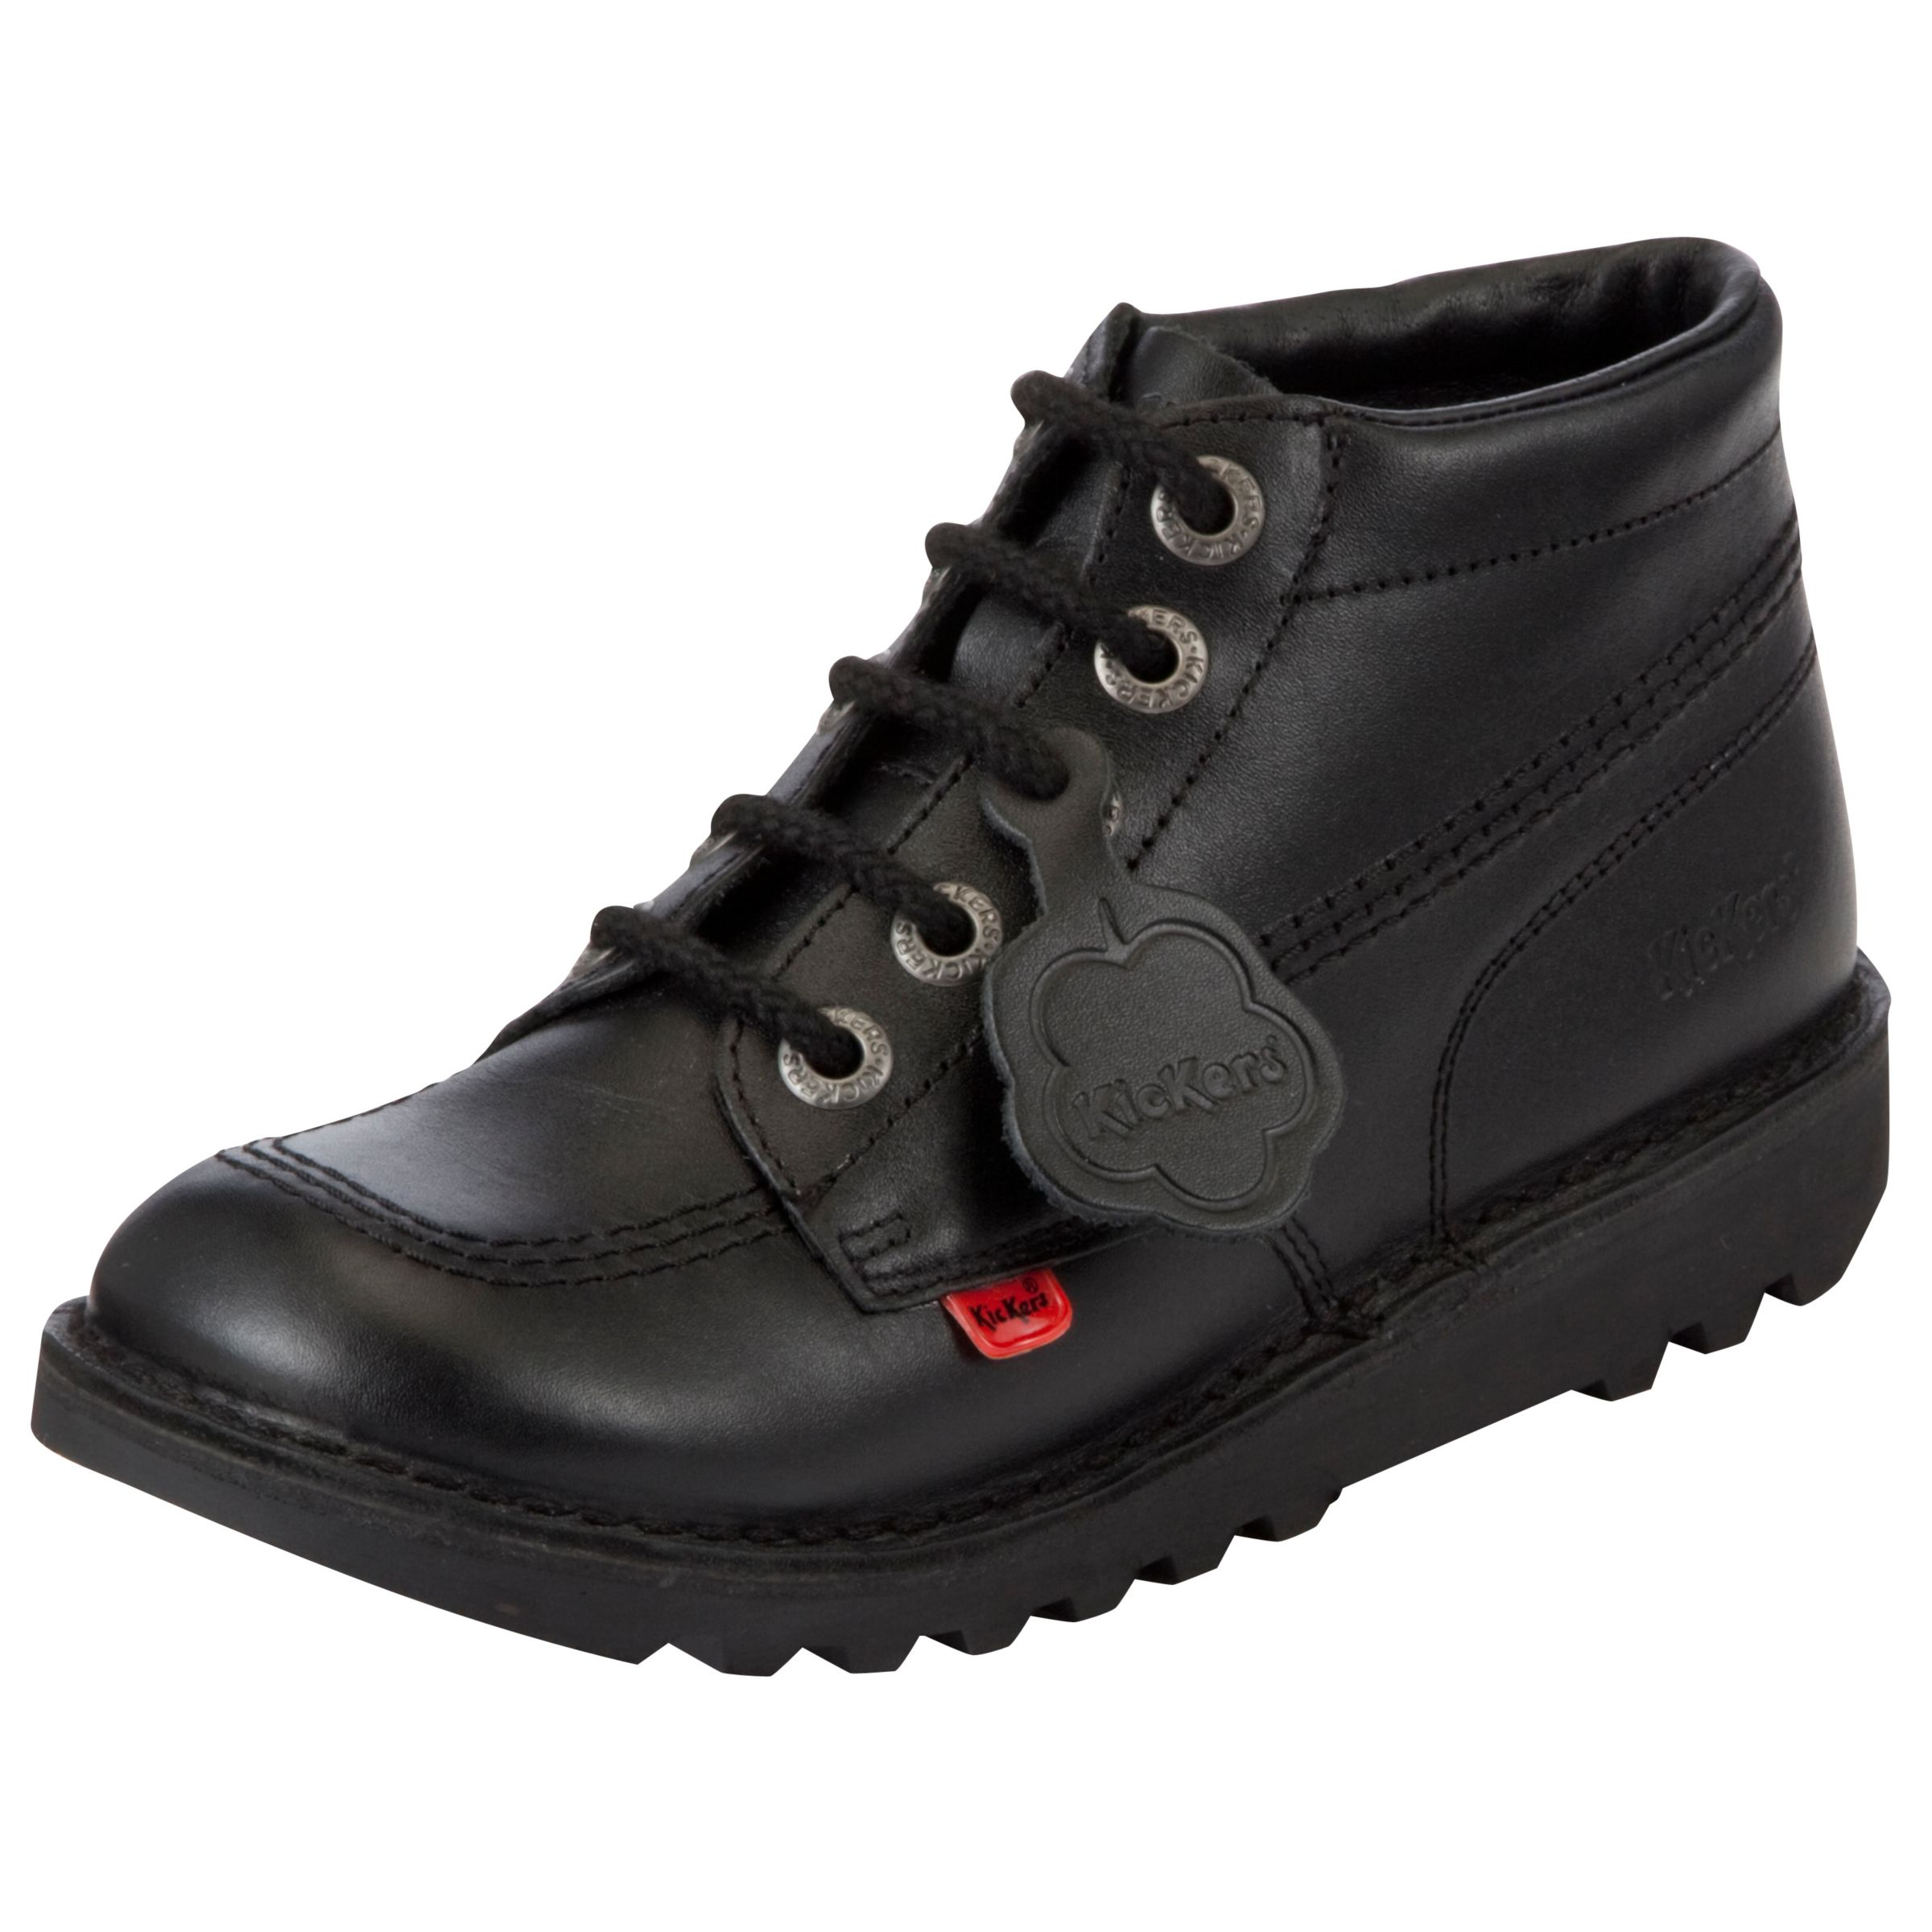 Kickers Kickers Children's Leather Lace-Up Hi Boots, Black